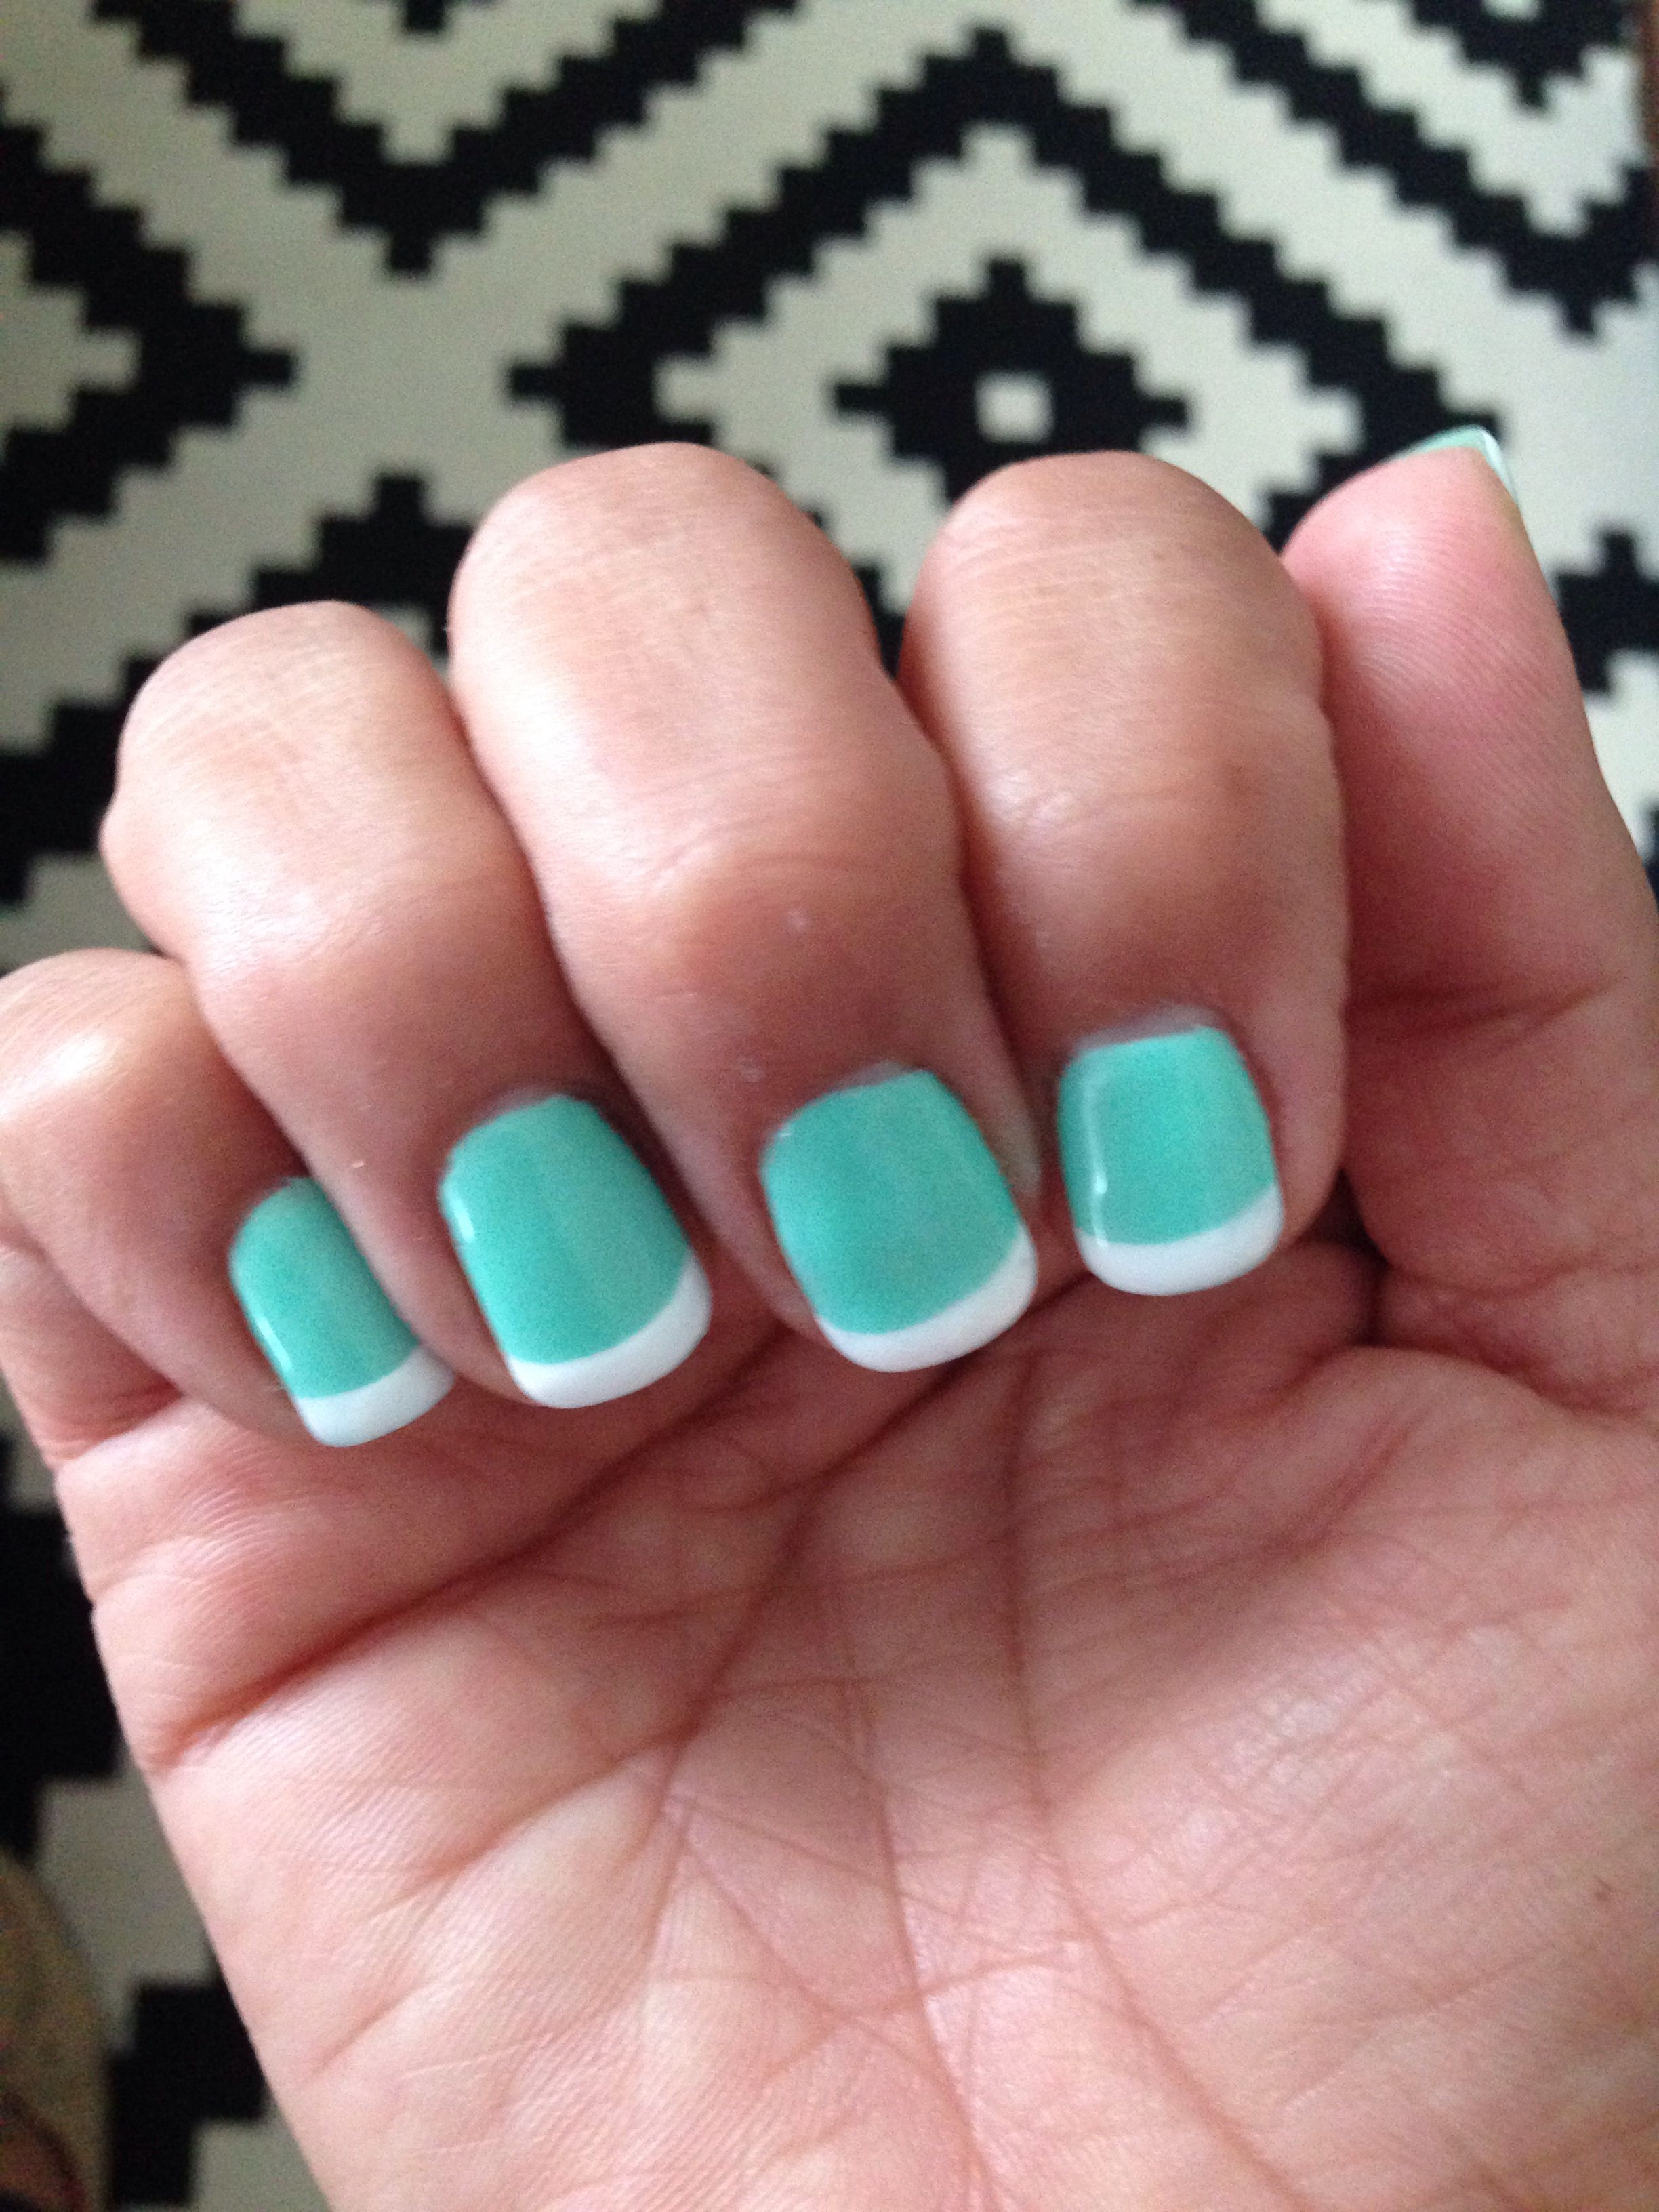 Mint with white French tip @ KC Nails in La Habra CA | Nails | Pinterest